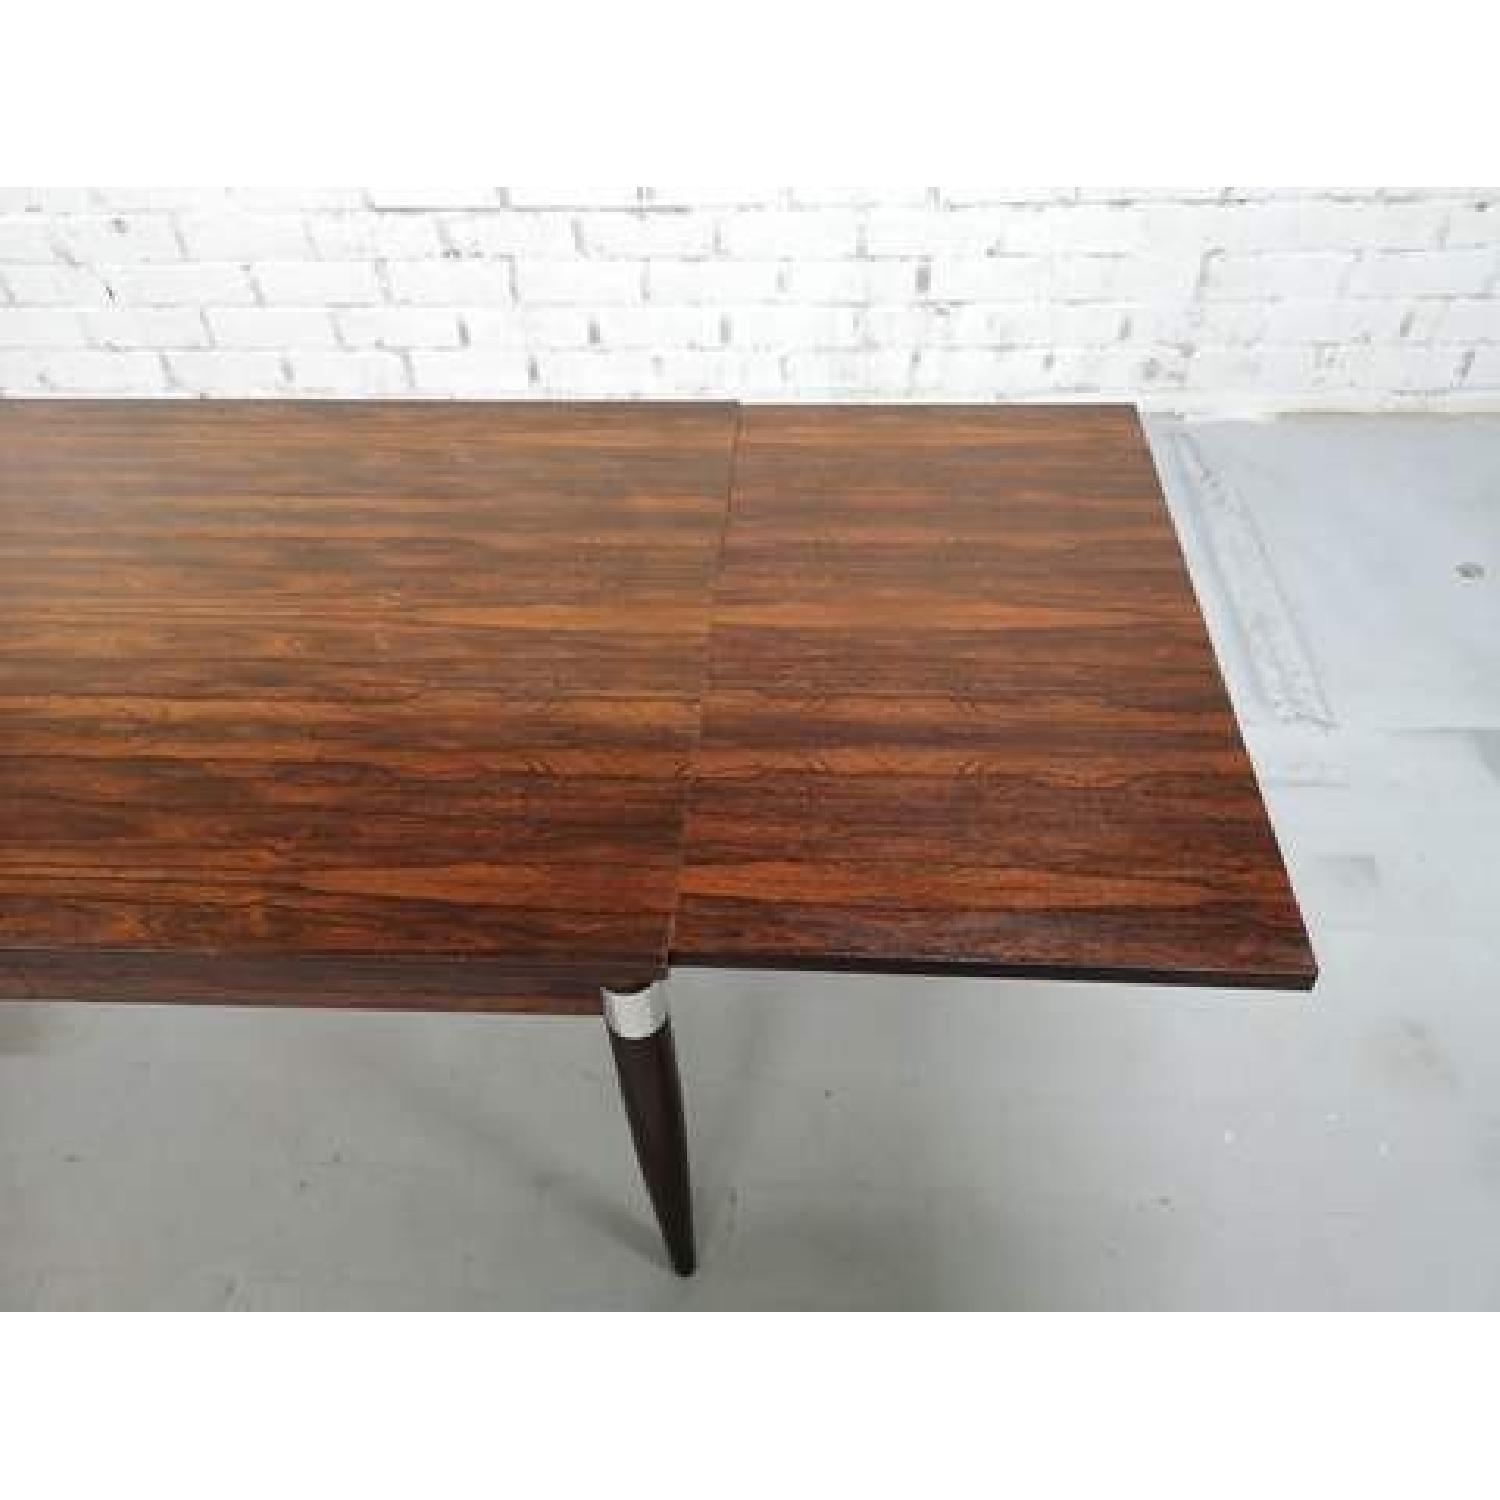 Mid-Century Modern Design Extendable Draw Leaf Dining Table - image-8